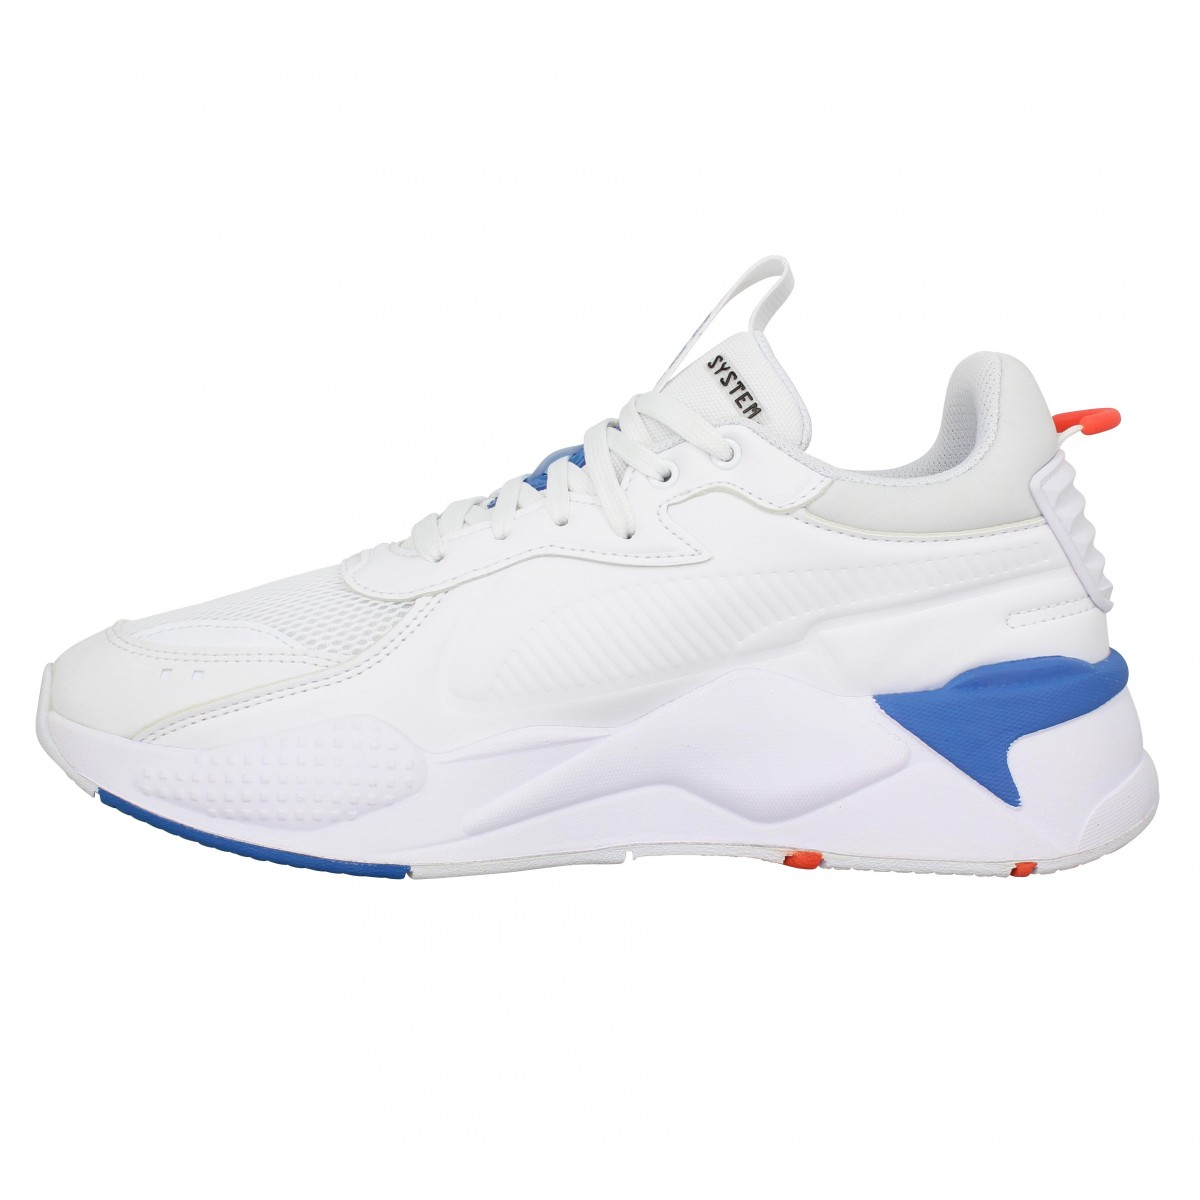 PUMA RS X Master toile Homme Blanc